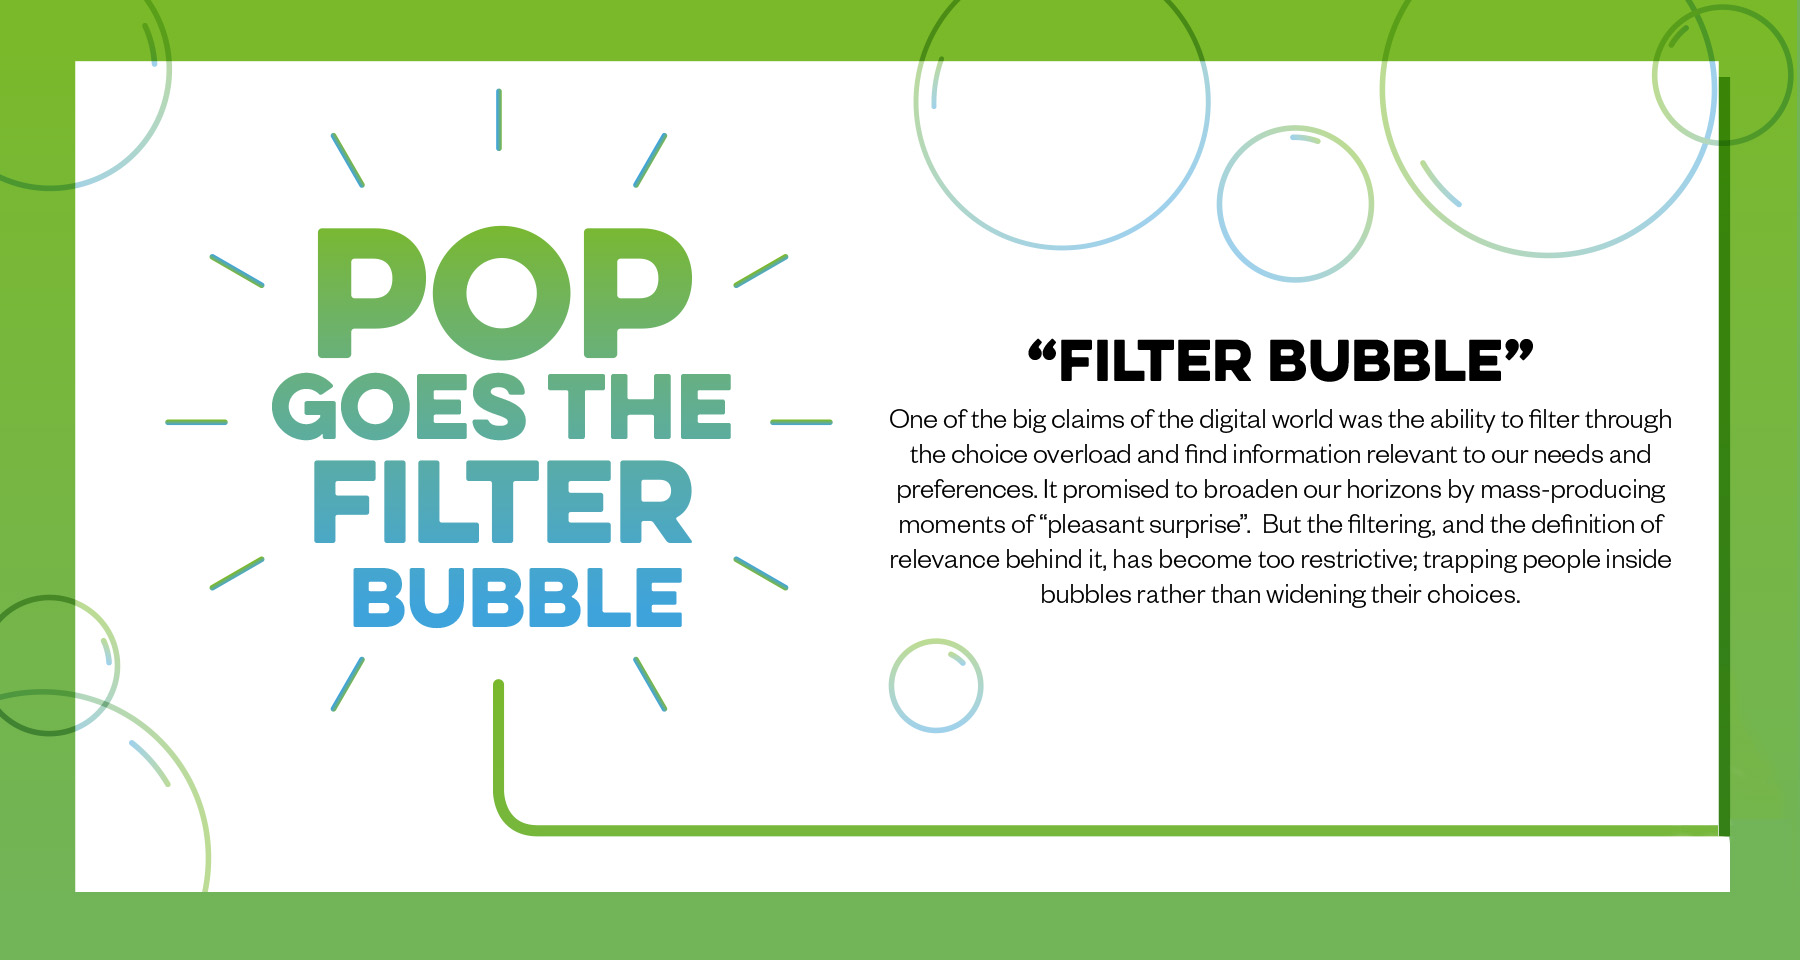 Popping the filter bubble